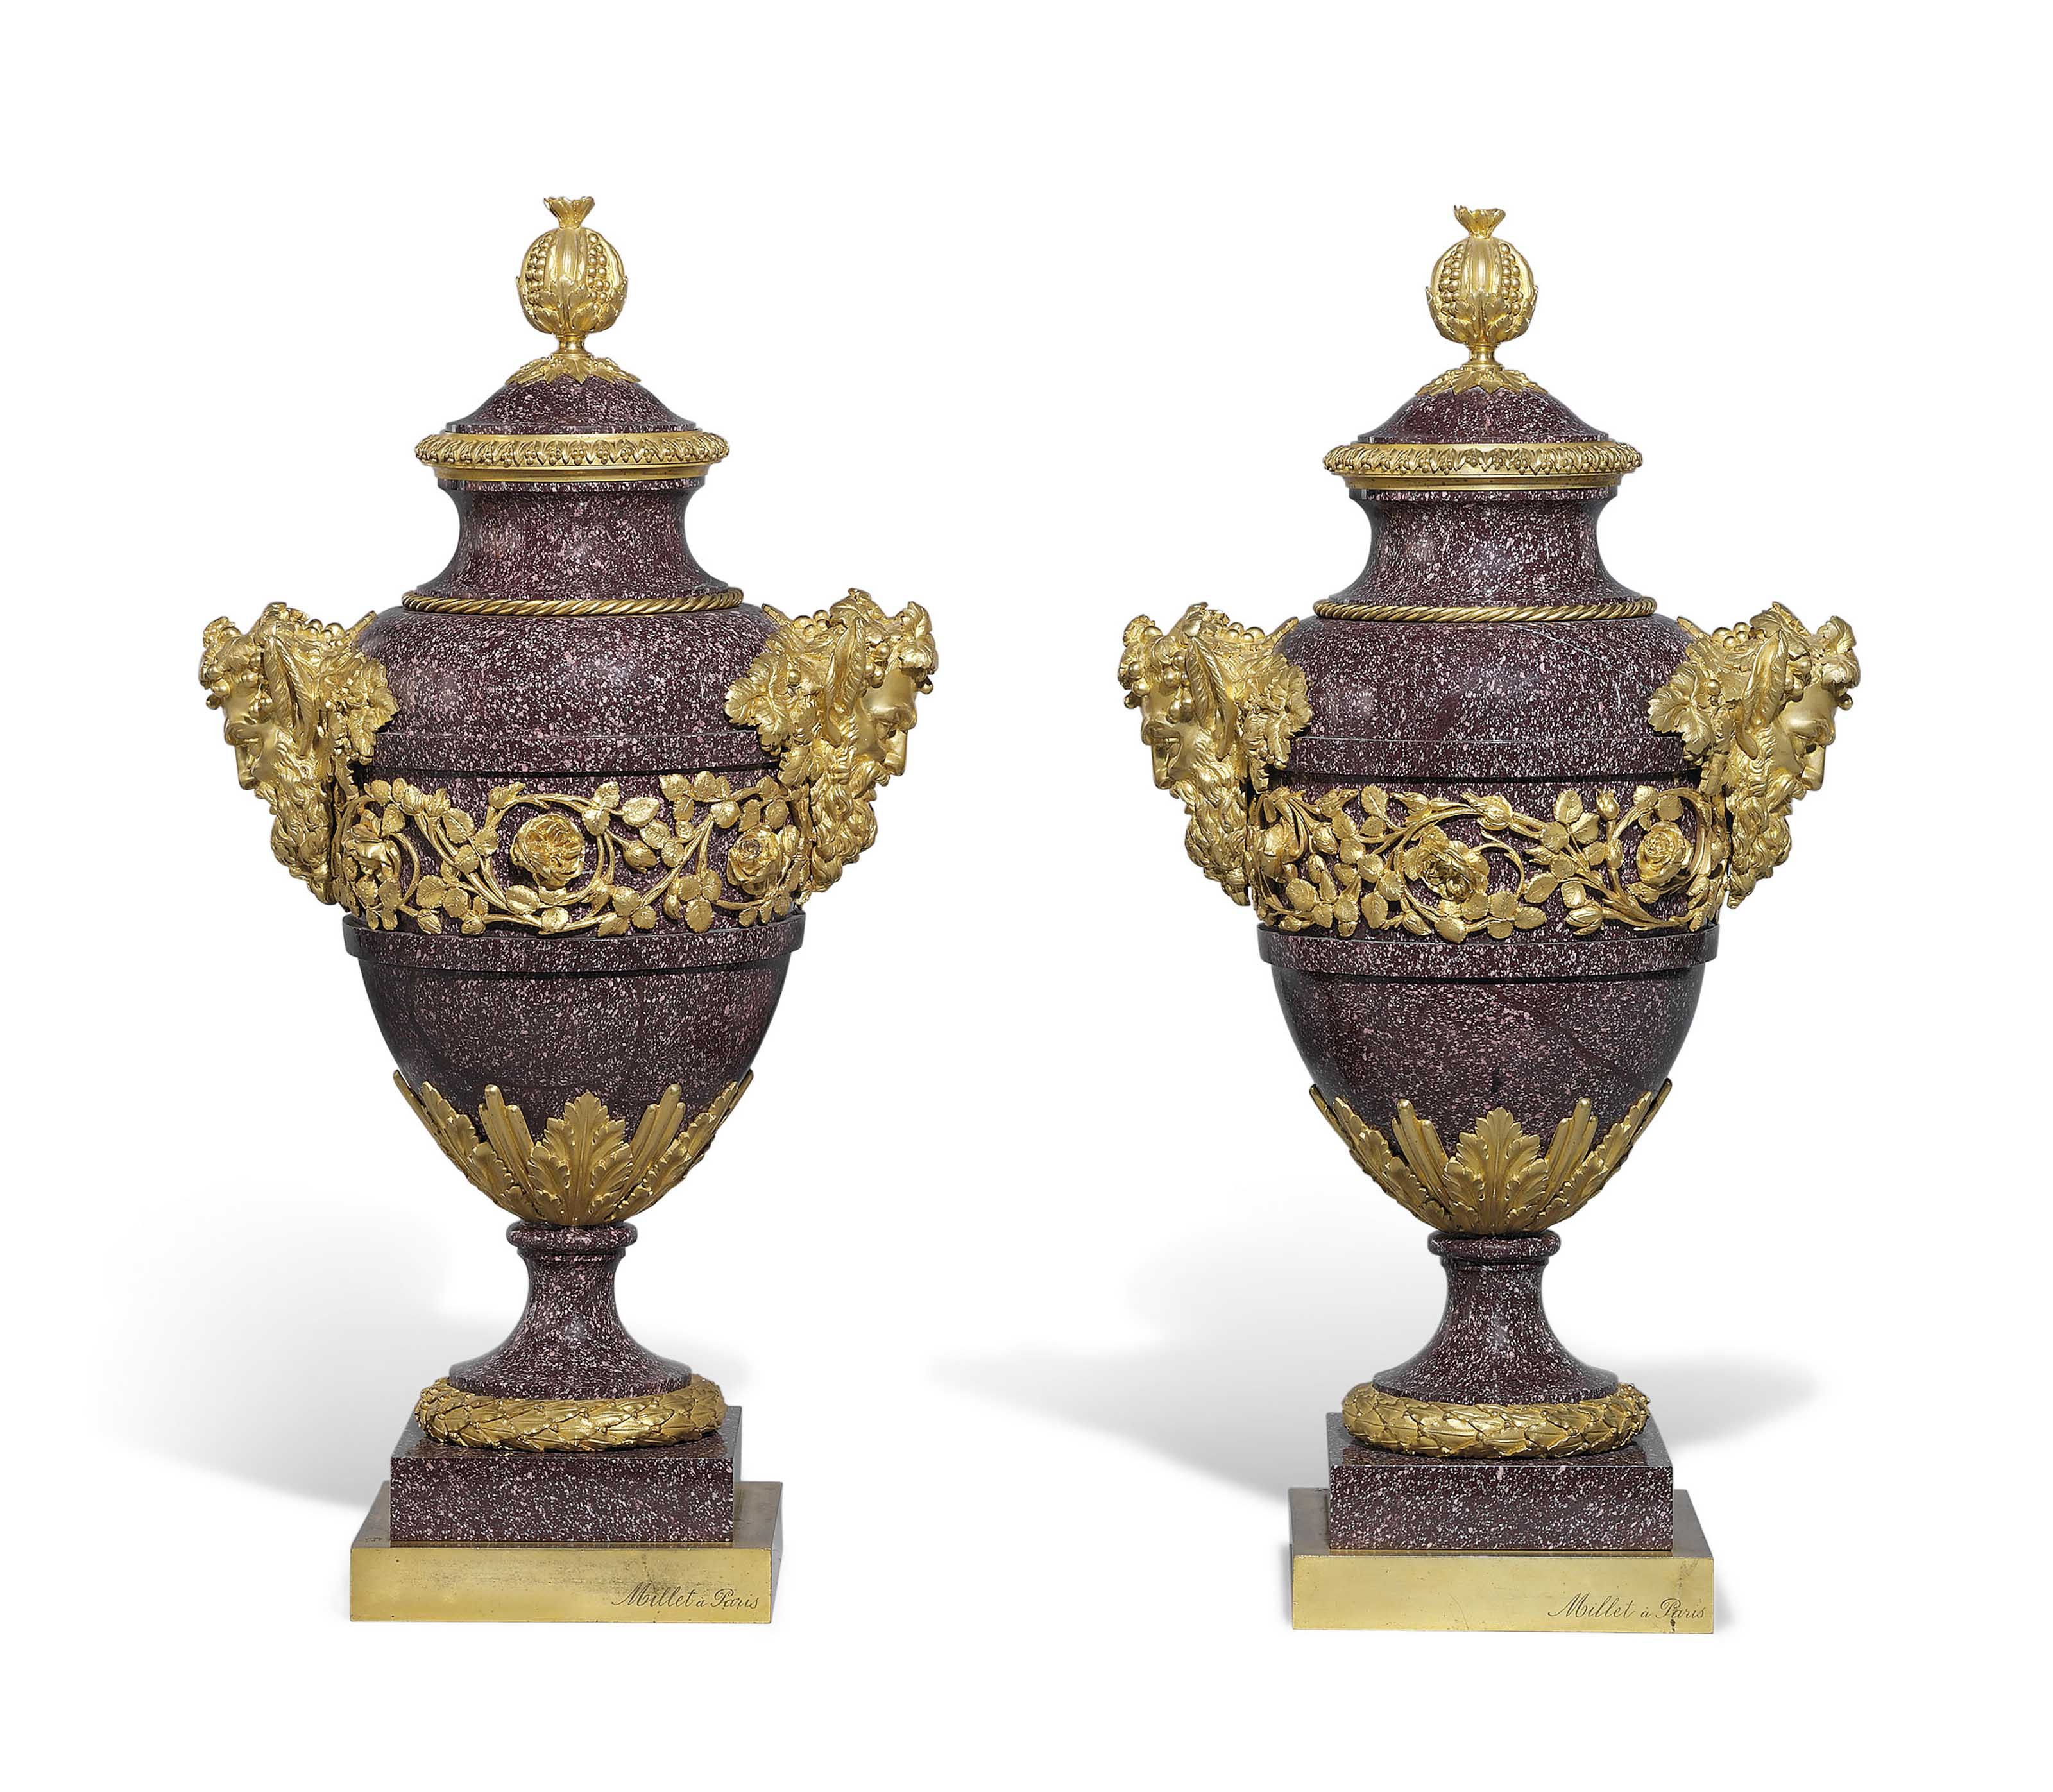 A PAIR OF FRENCH ORMOLU-MOUNTED PORPHYRY VASES AND COVERS